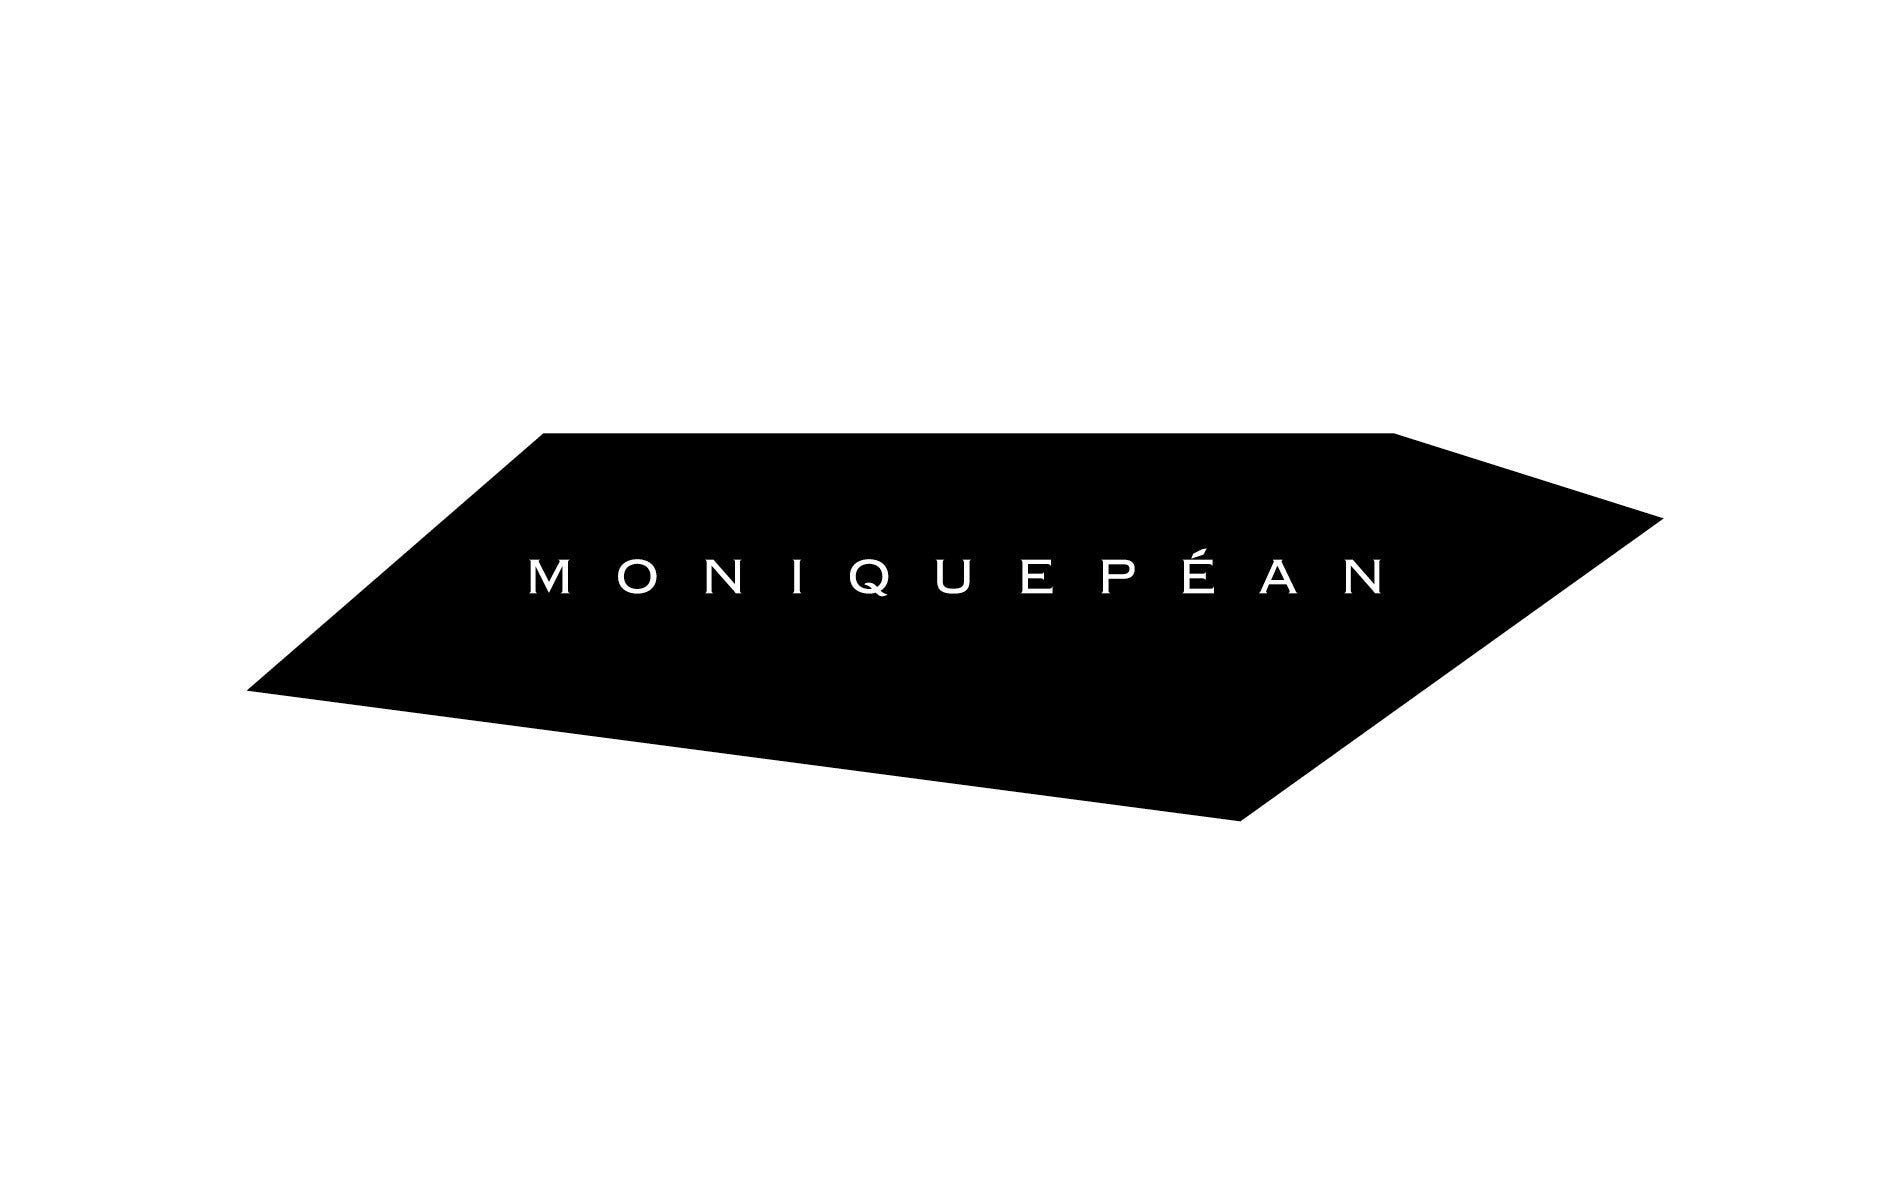 Monique Péan company logo